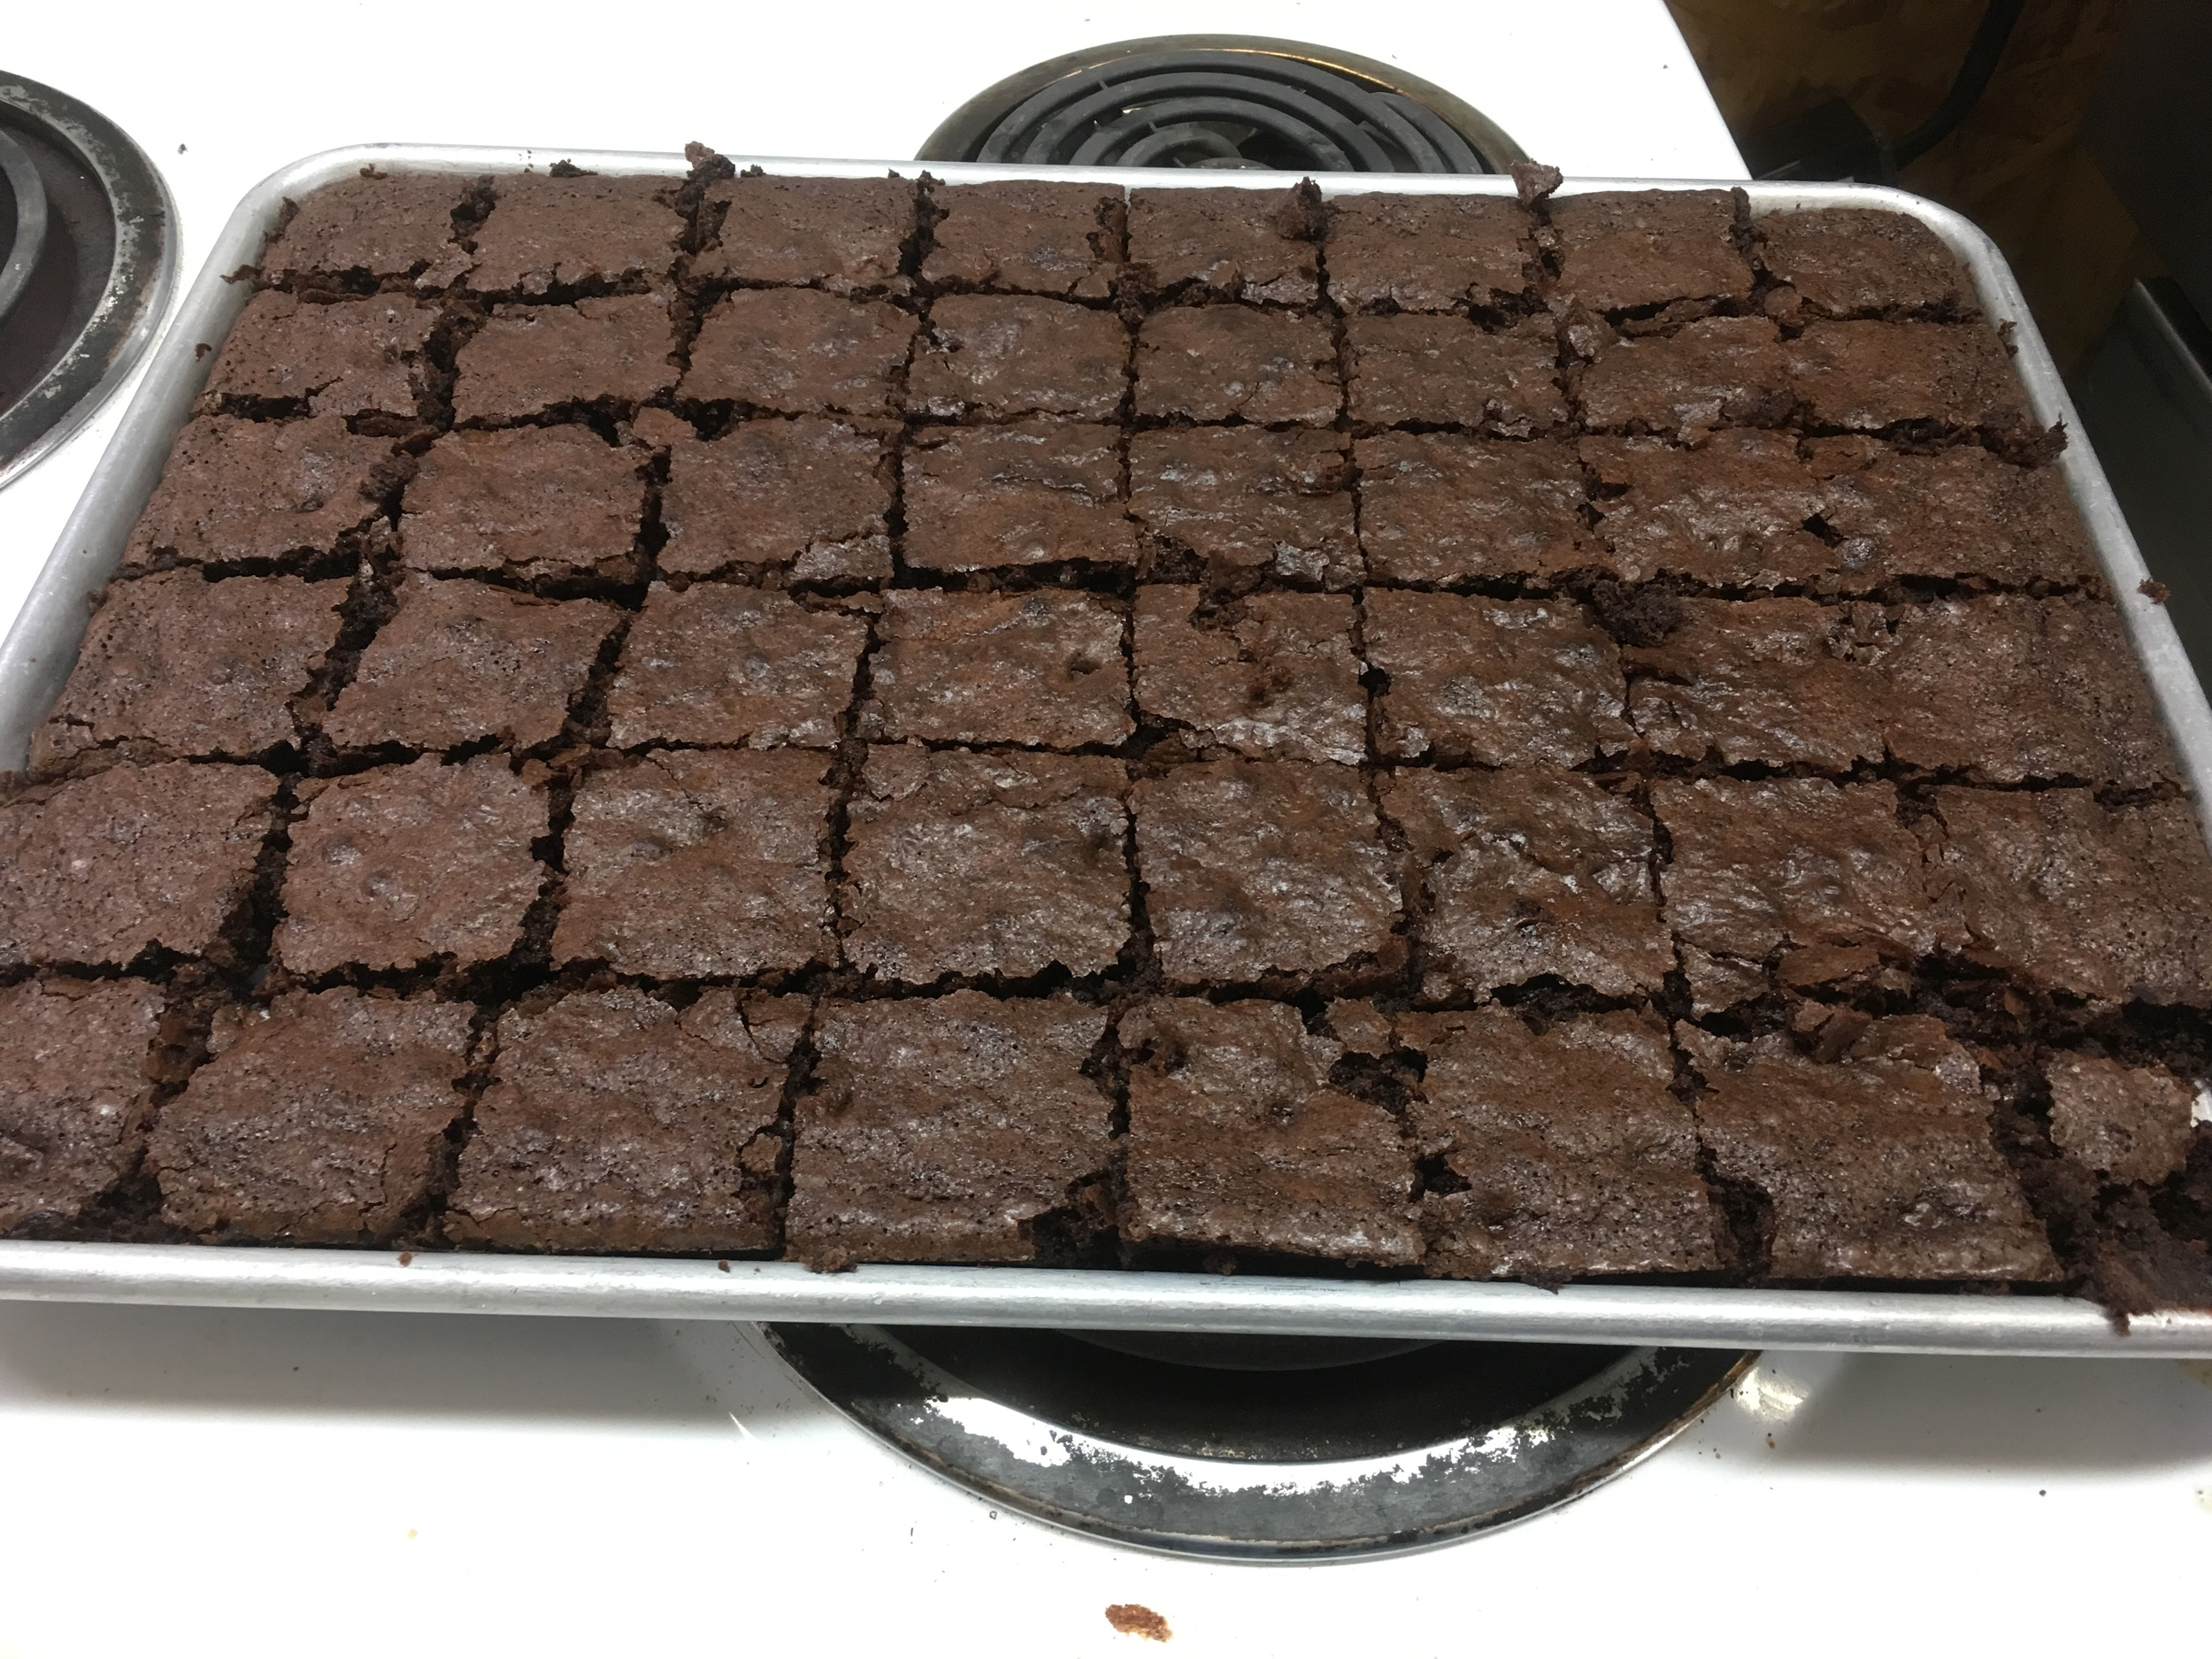 brownies cut and ready to serve - never mind the piece missing in the bottom right corner